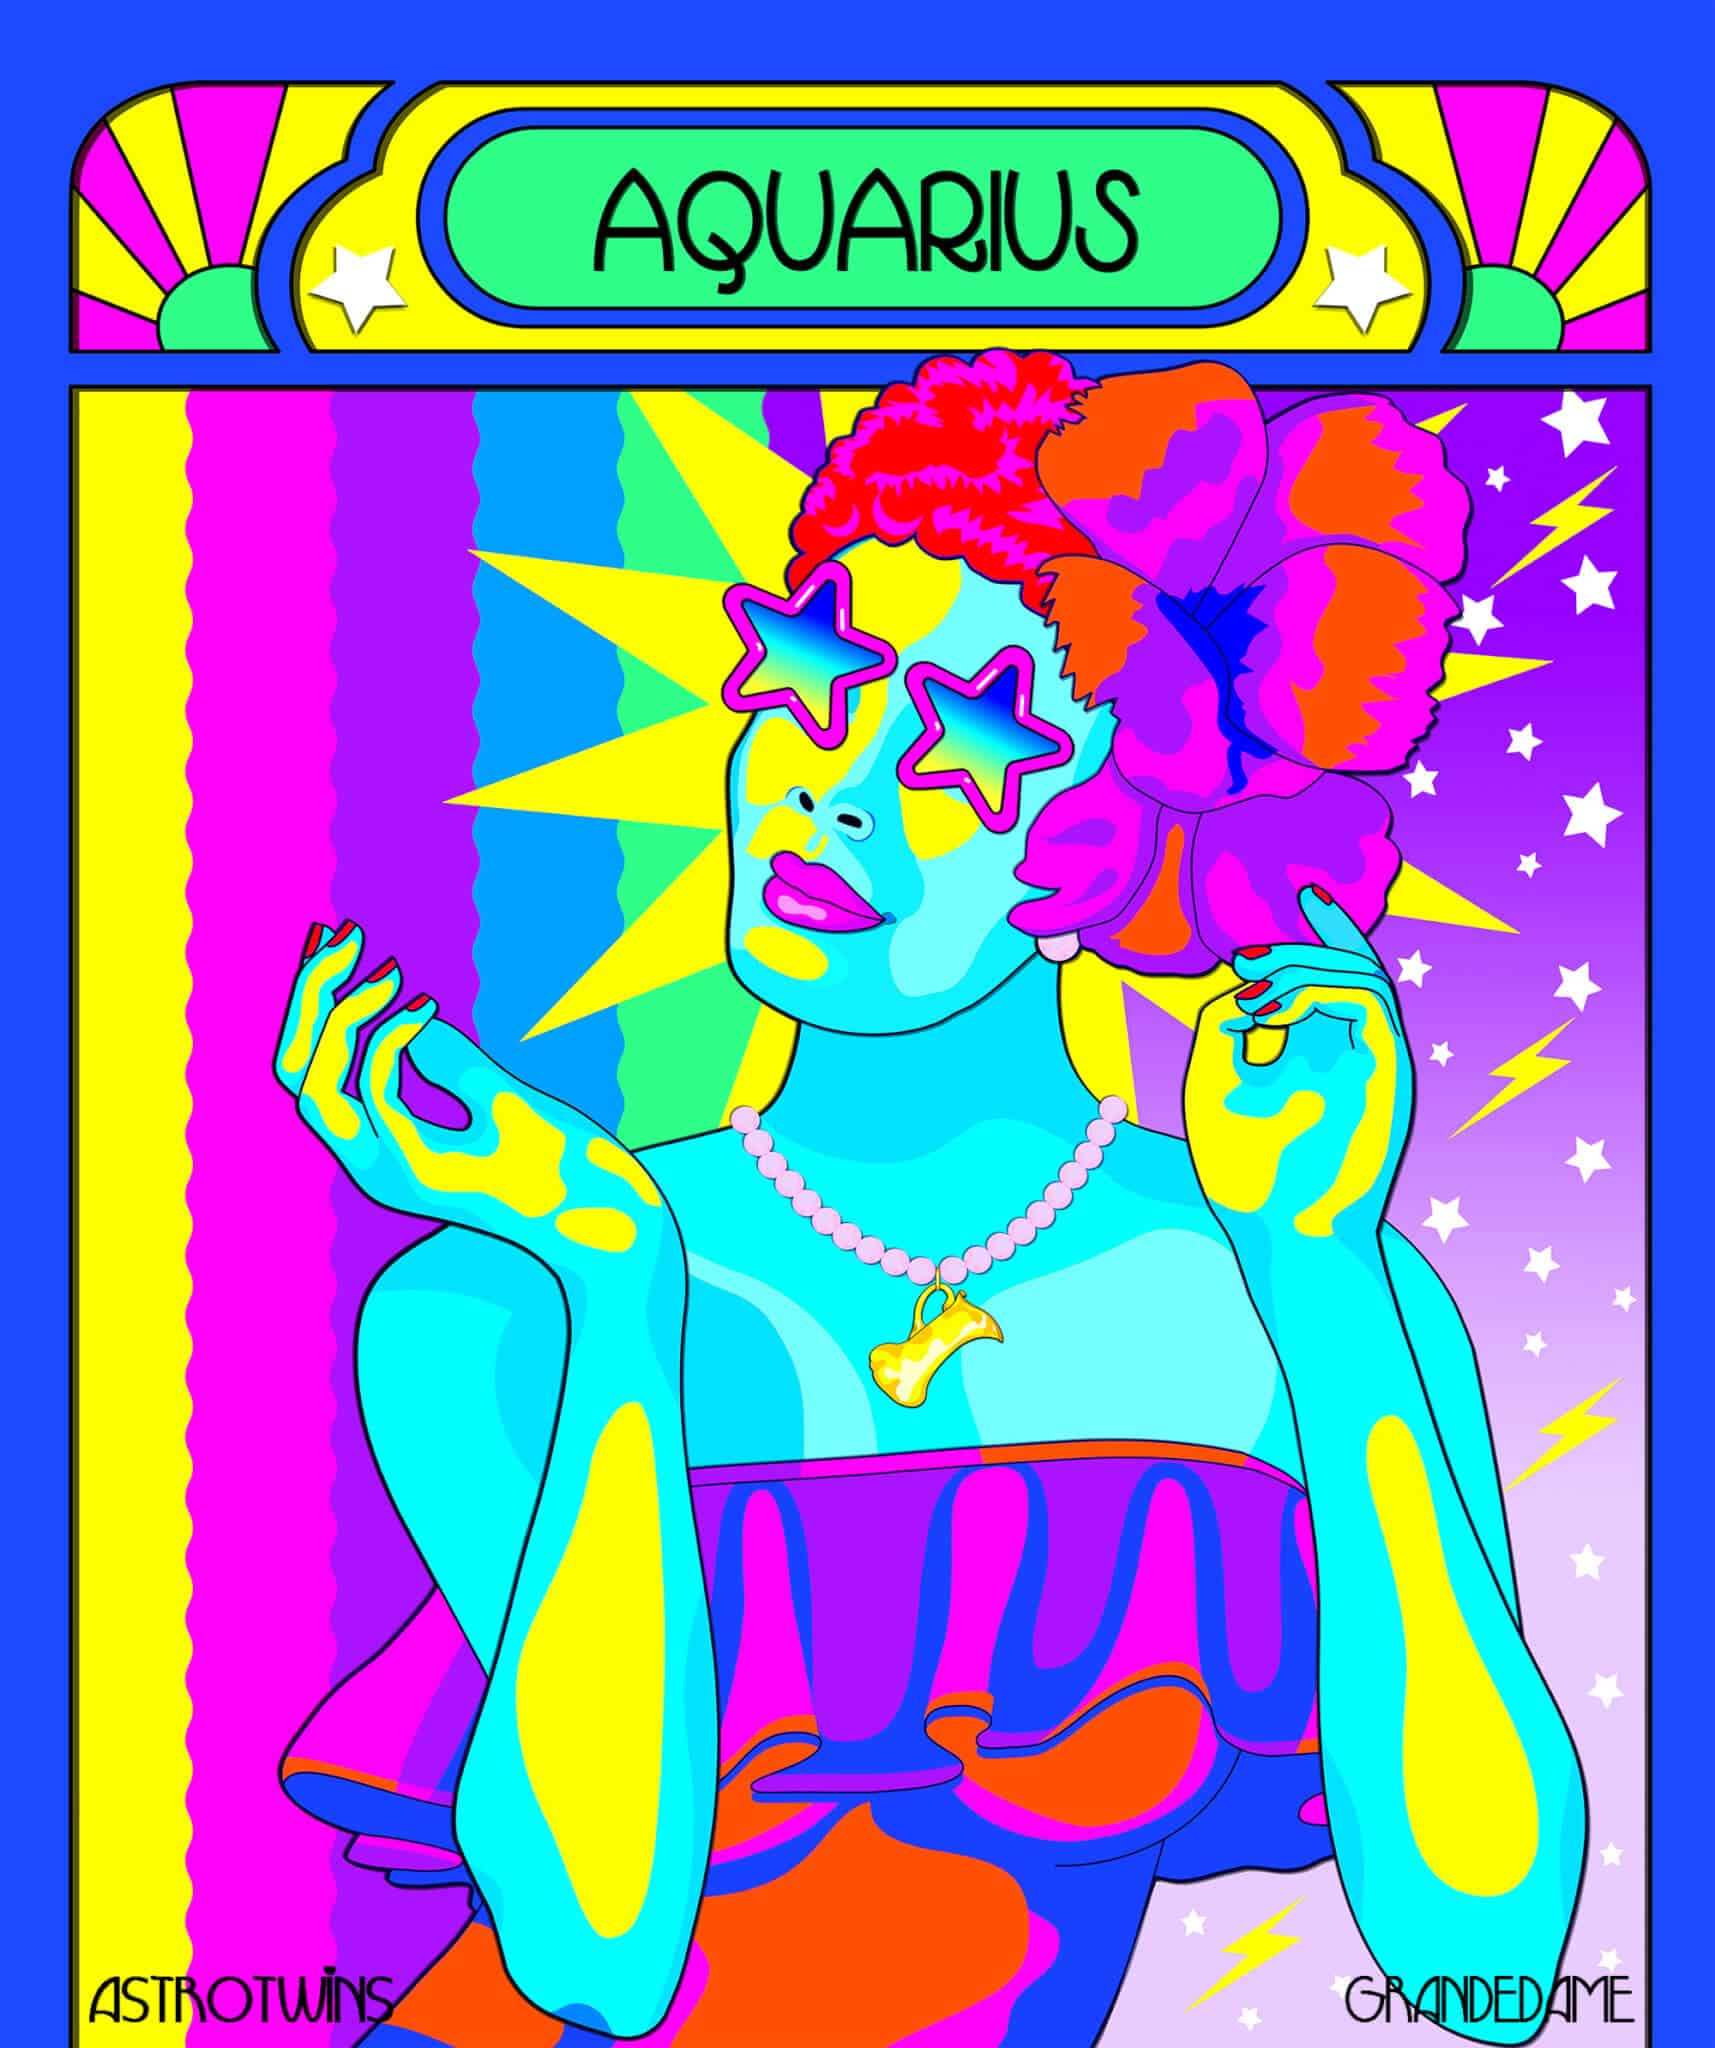 aquarius season in astrology horoscope by the astrotwins